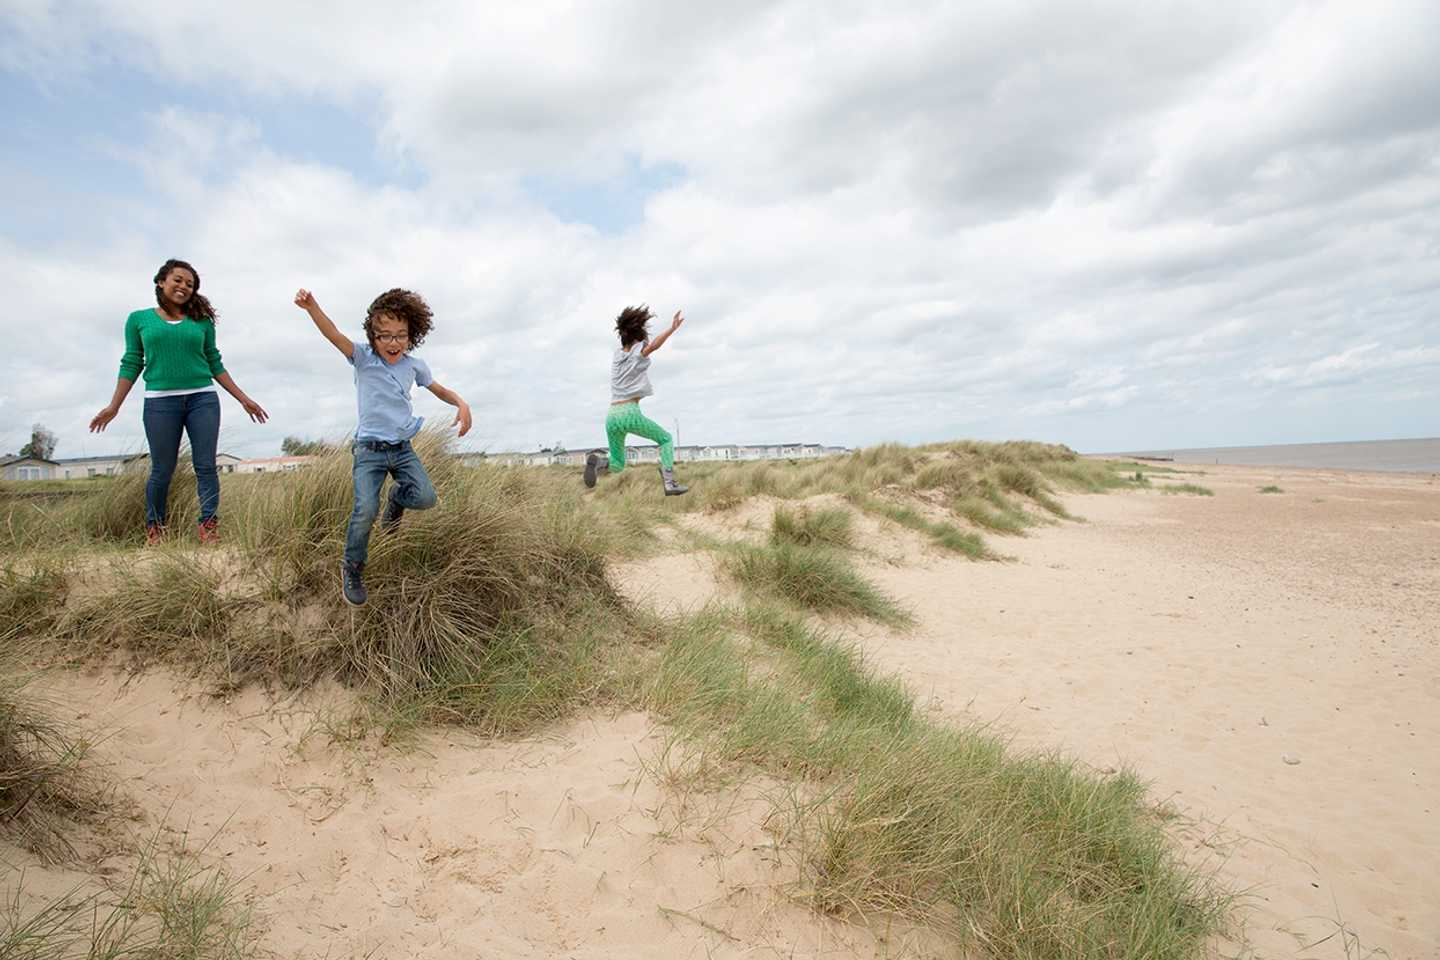 Family playing in the sand dunes at Seashore